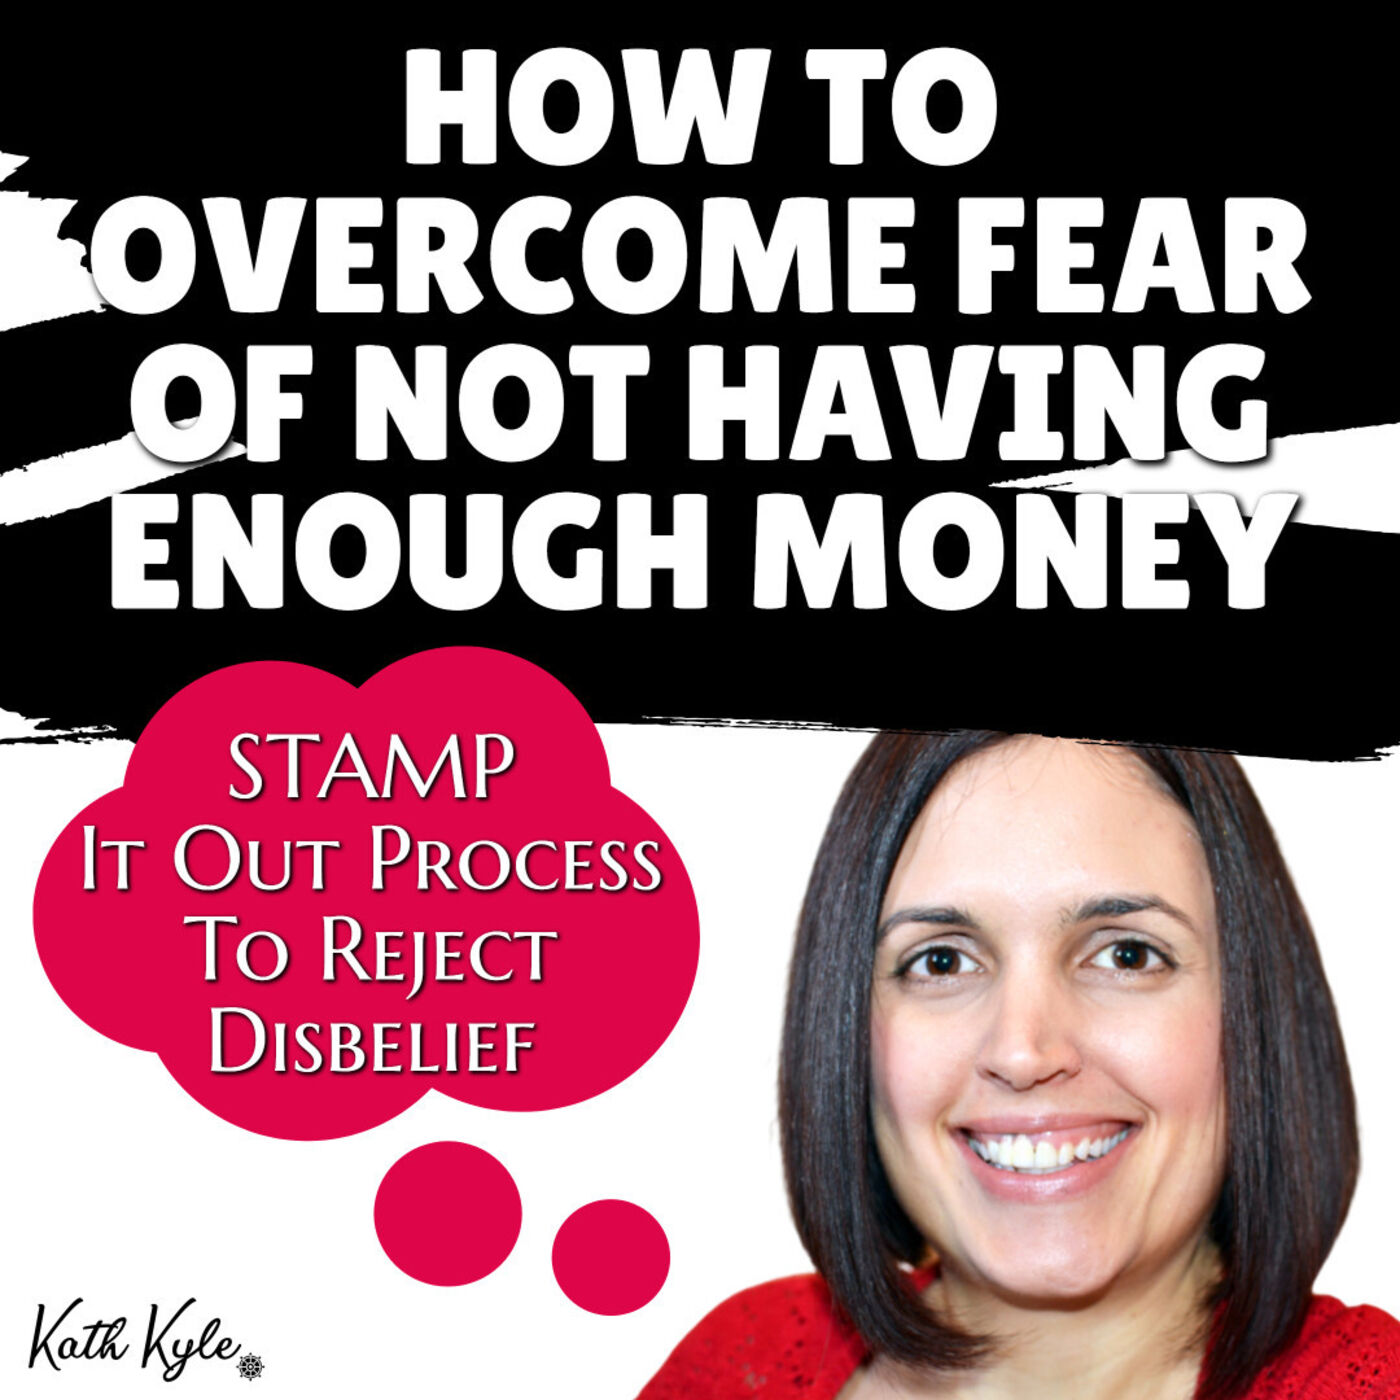 100 How To Overcome Fear Of Not Having Enough Money